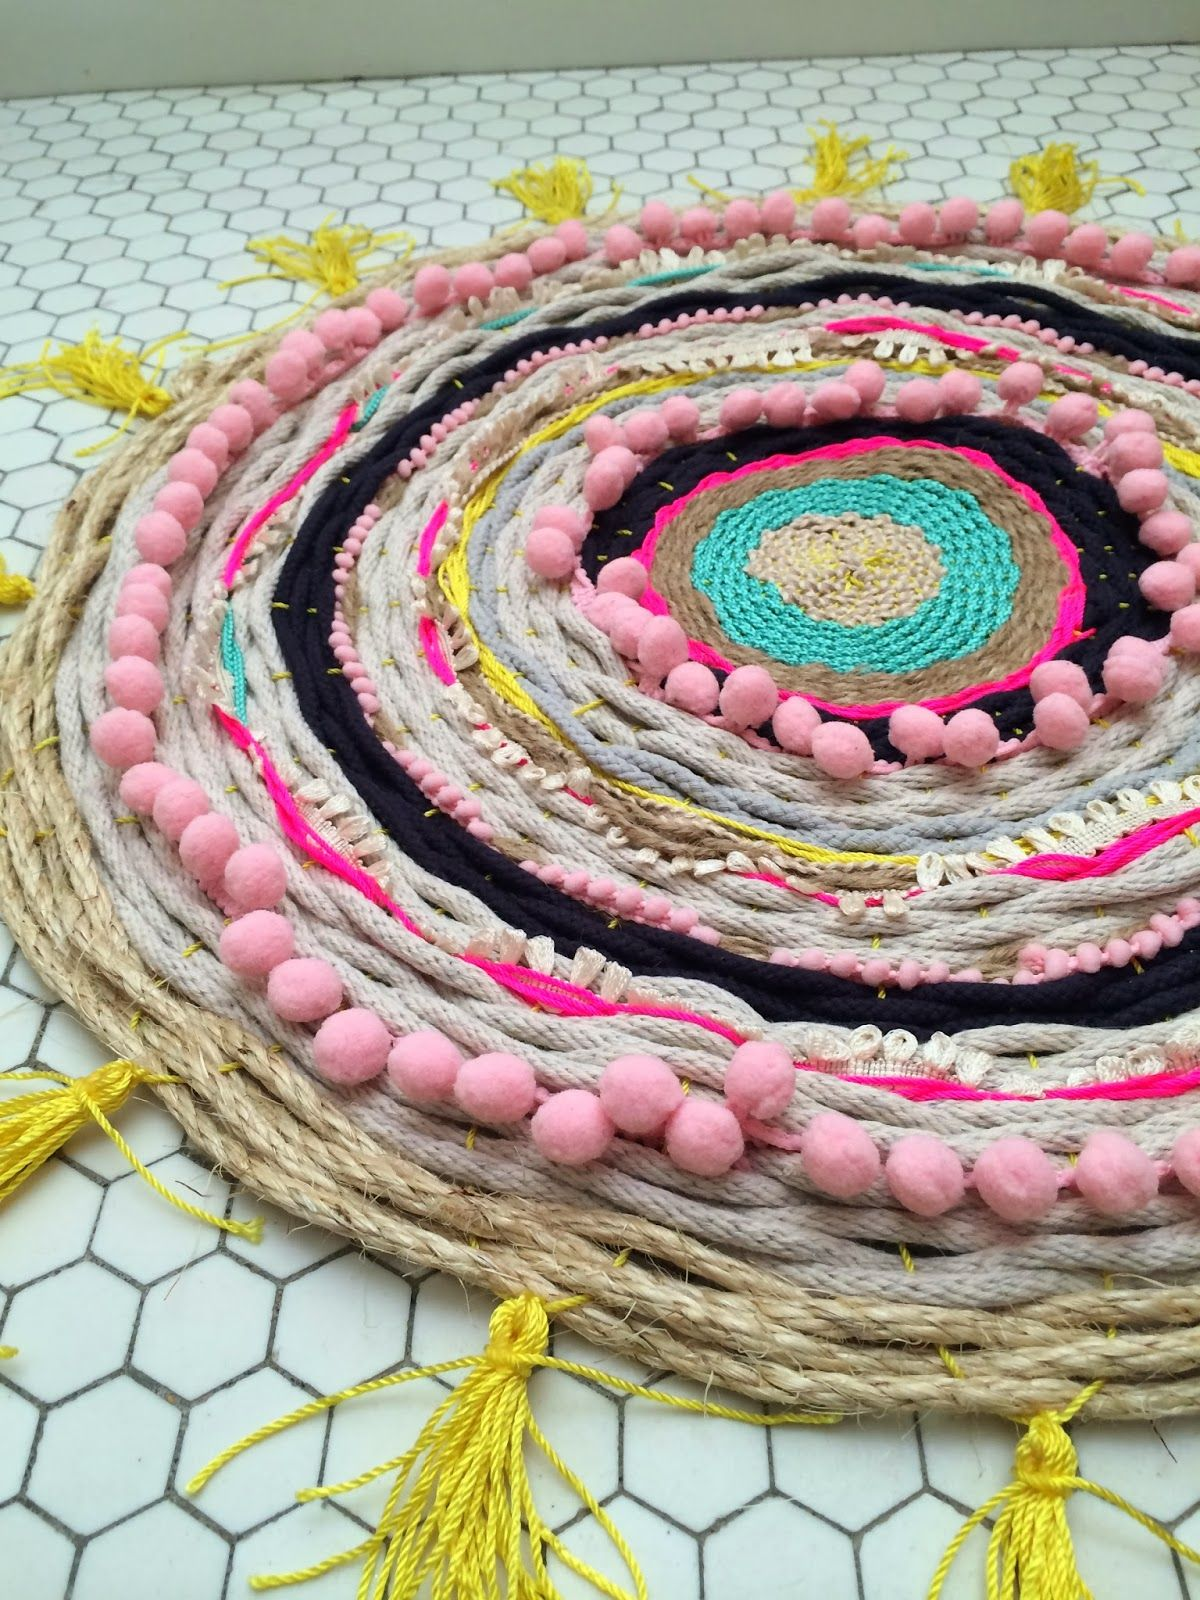 DIY Woven Pompom Rope Rug Red Lipstick French Toast Home - Diy rugs projects